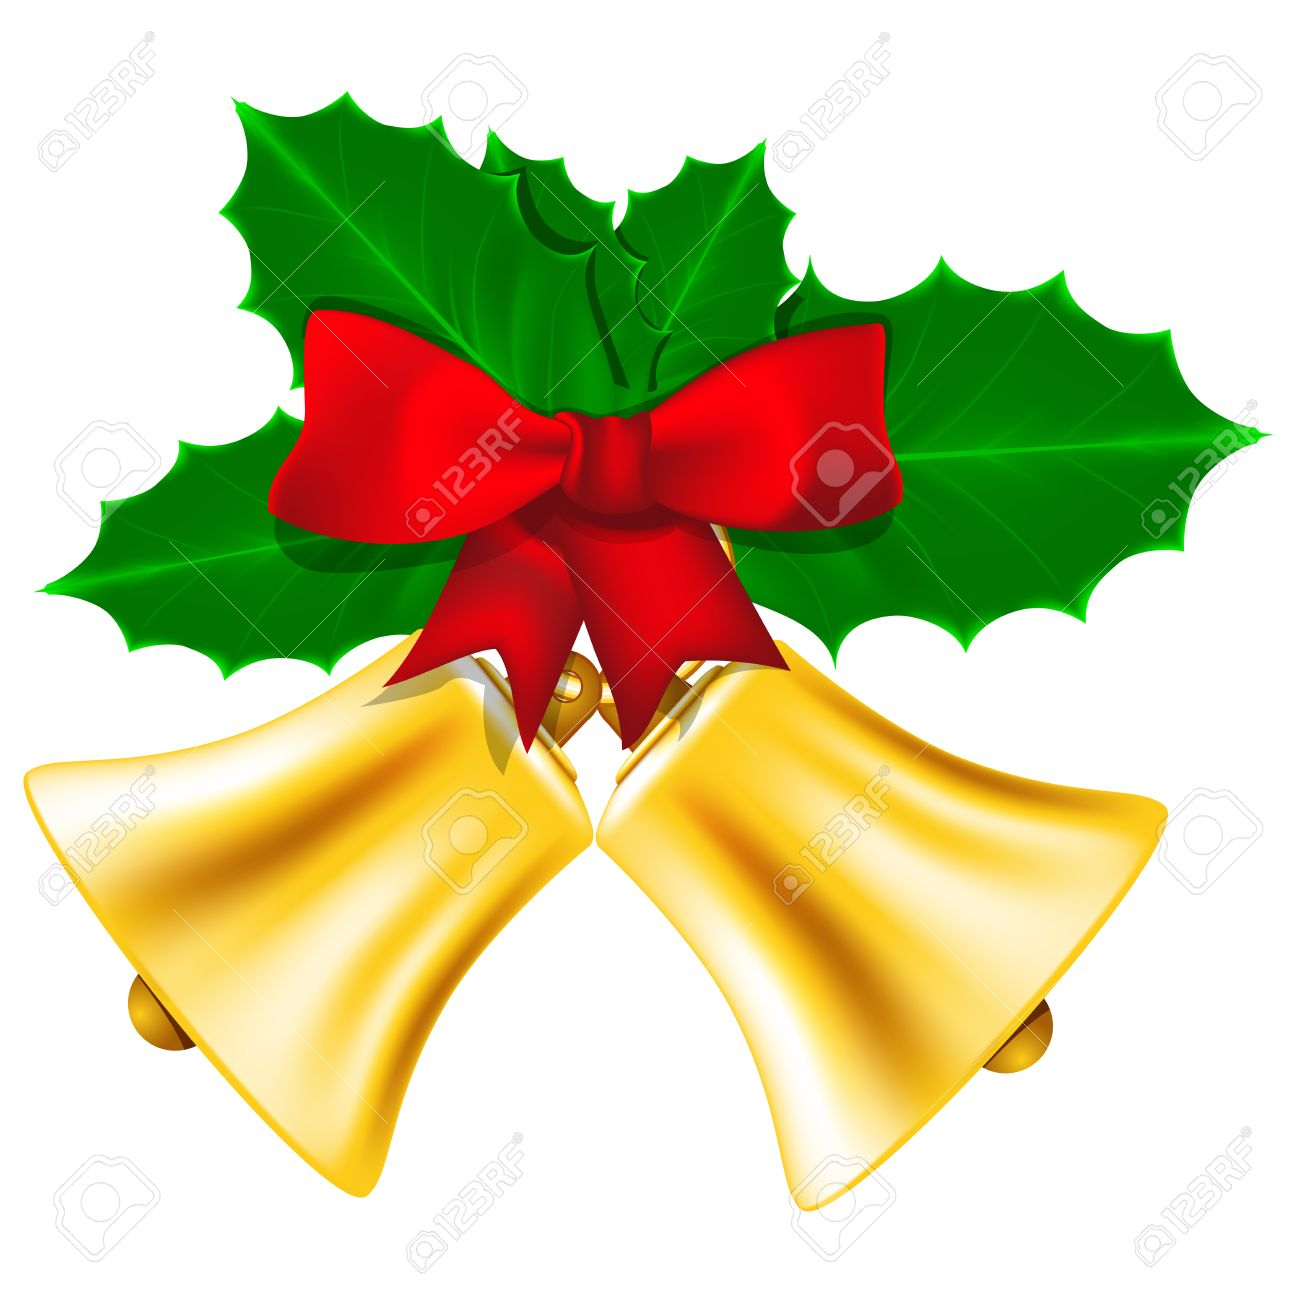 holly leaves: Golden Christmas bells with red bow and leaves of holly